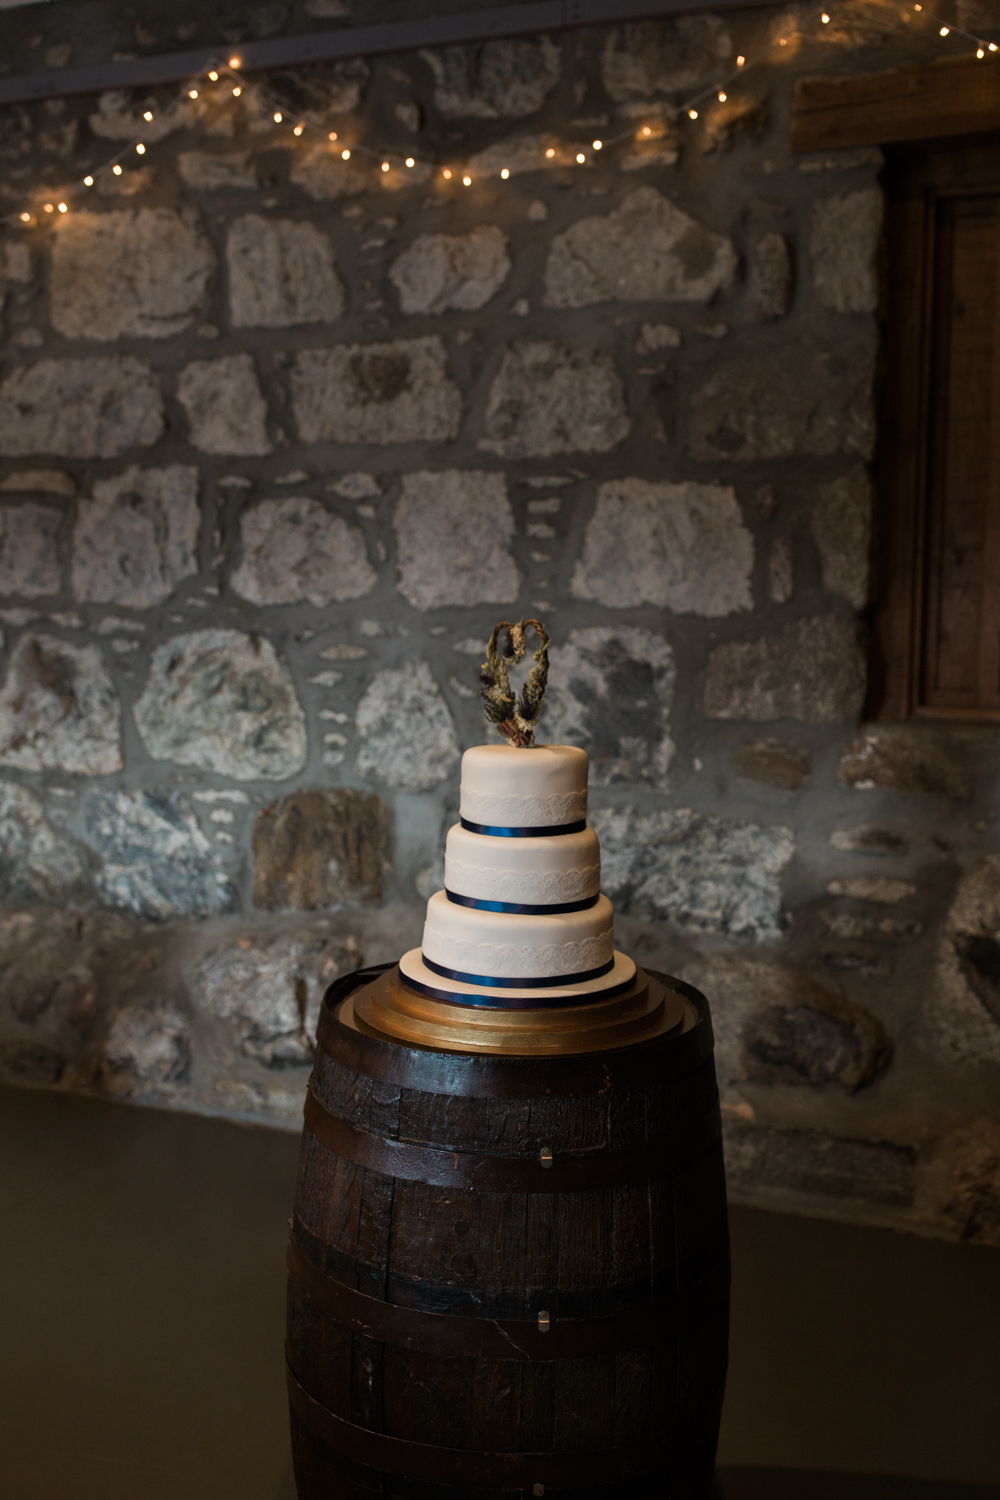 aberdeenweddingwoodendbarn (9 of 20).jpg